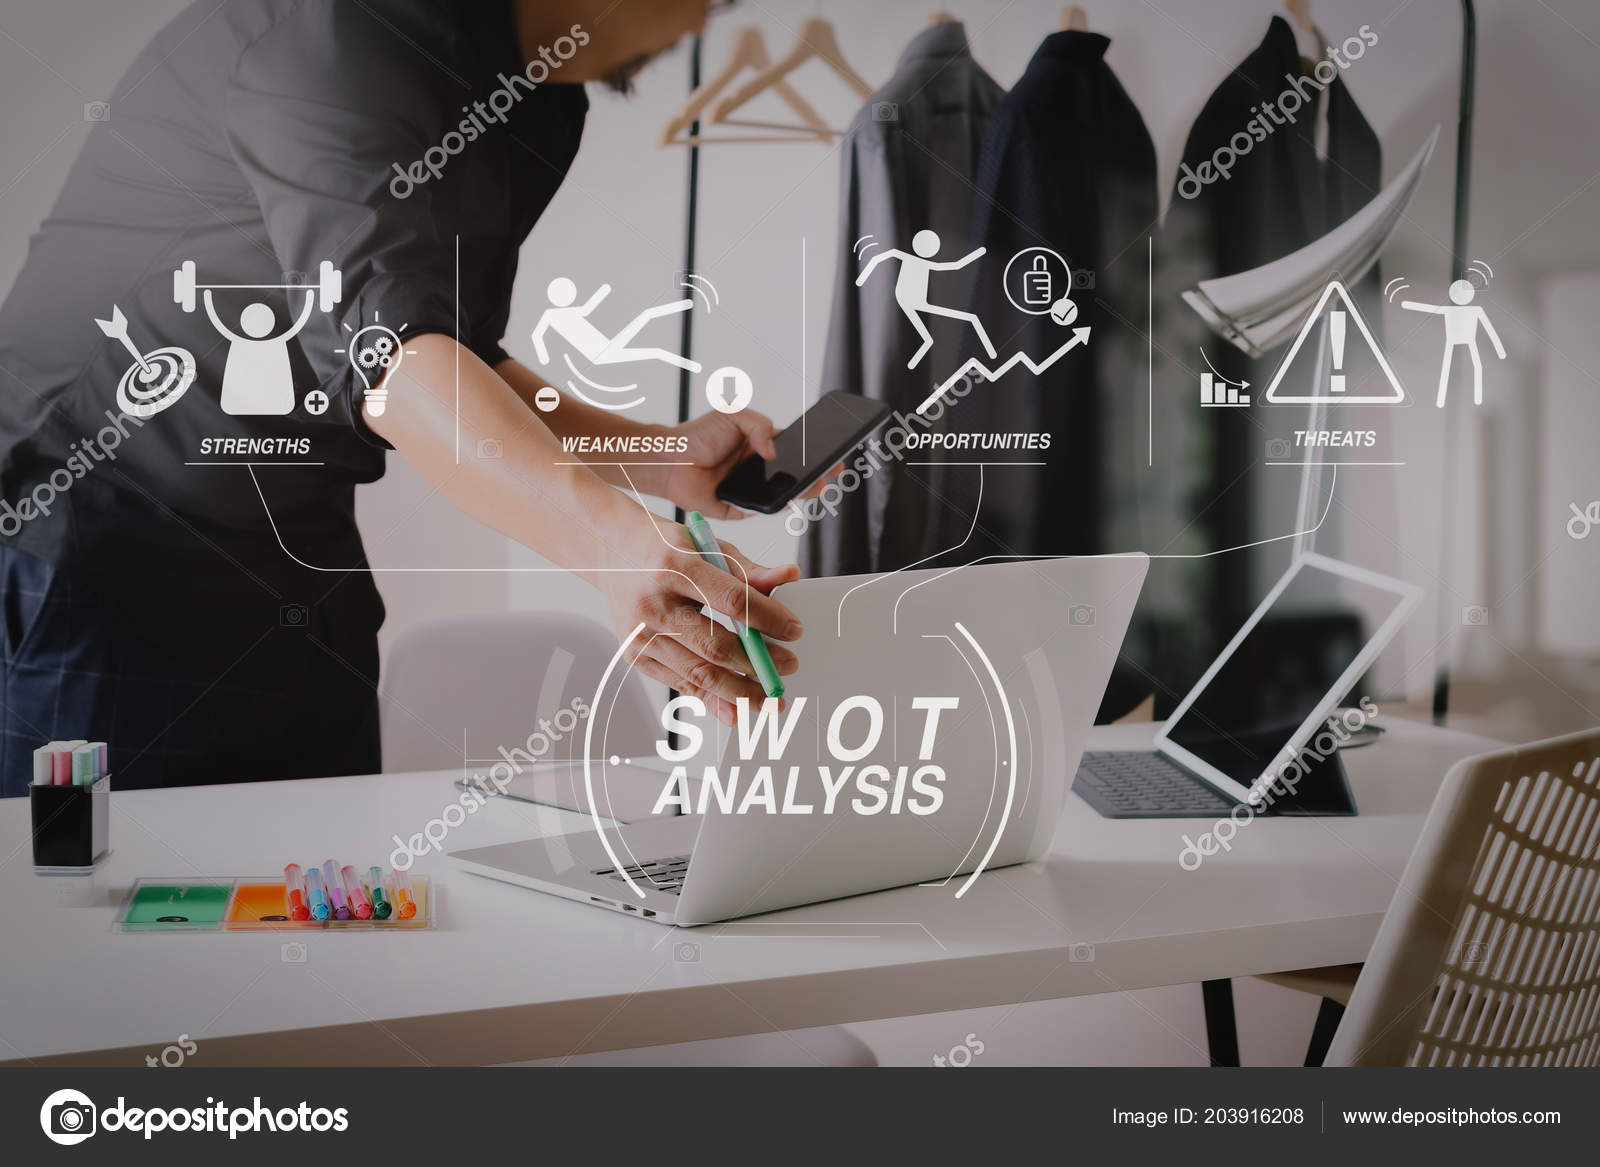 Swot Analysis Virtual Diagram Strengths Weaknesses Threats Opportunities Company Fashion Stock Photo C Everythingposs 203916208